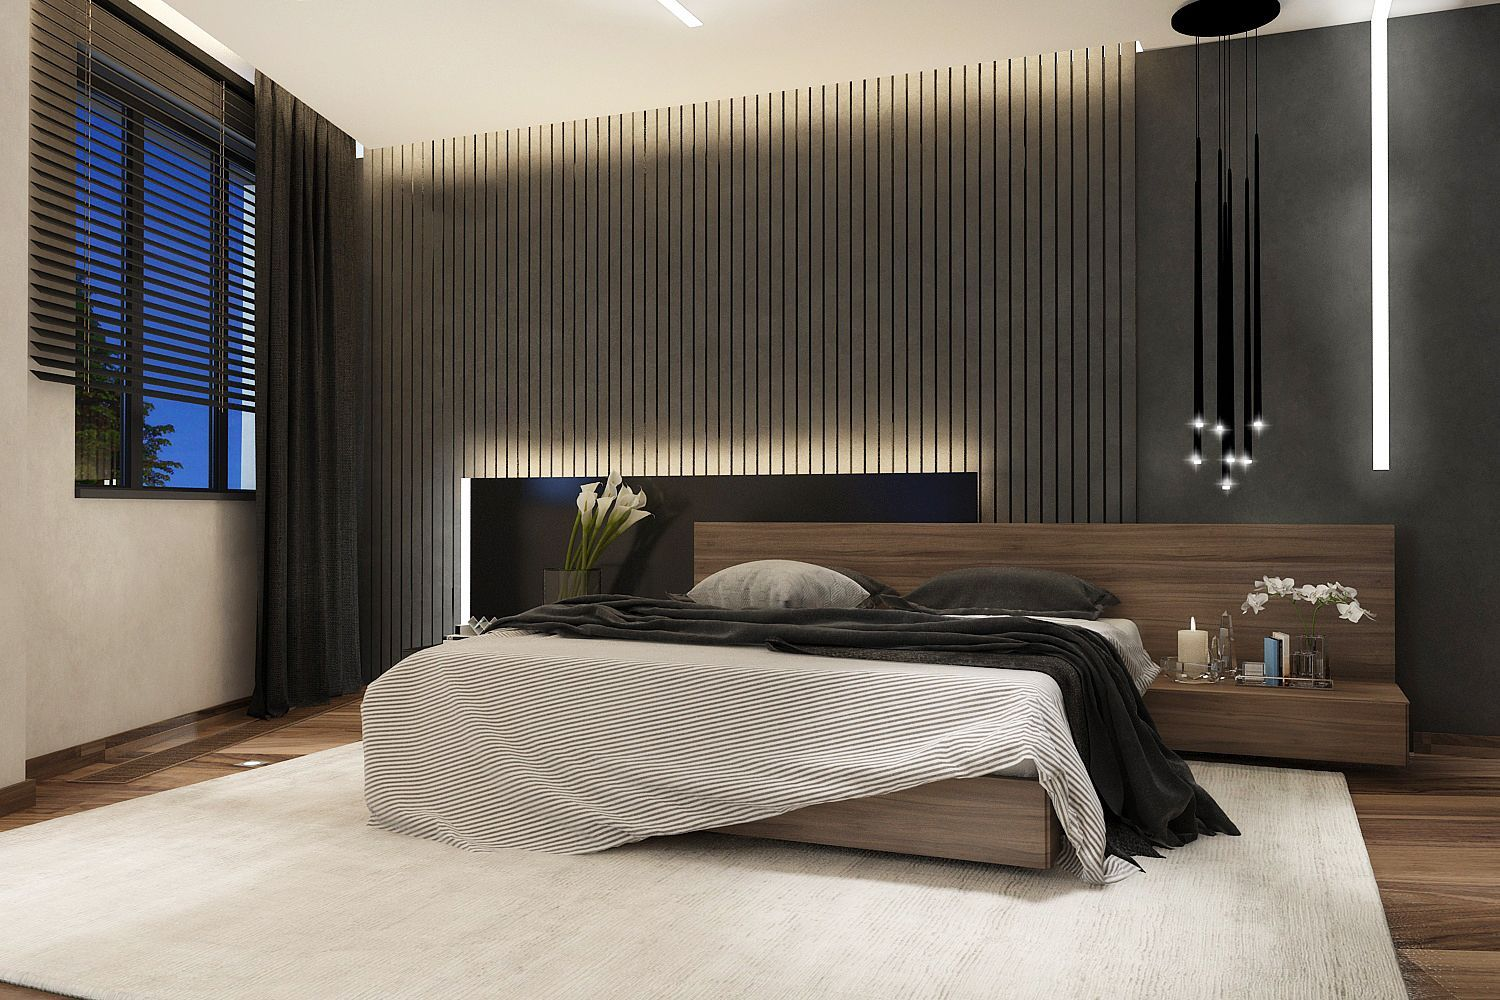 10 Bedroom Interior Design Trends For This Year Tags Bedroom Interior Design Small Bedroom Designs Moder Bedroom Bed Design Bedroom Design Modern Bedroom